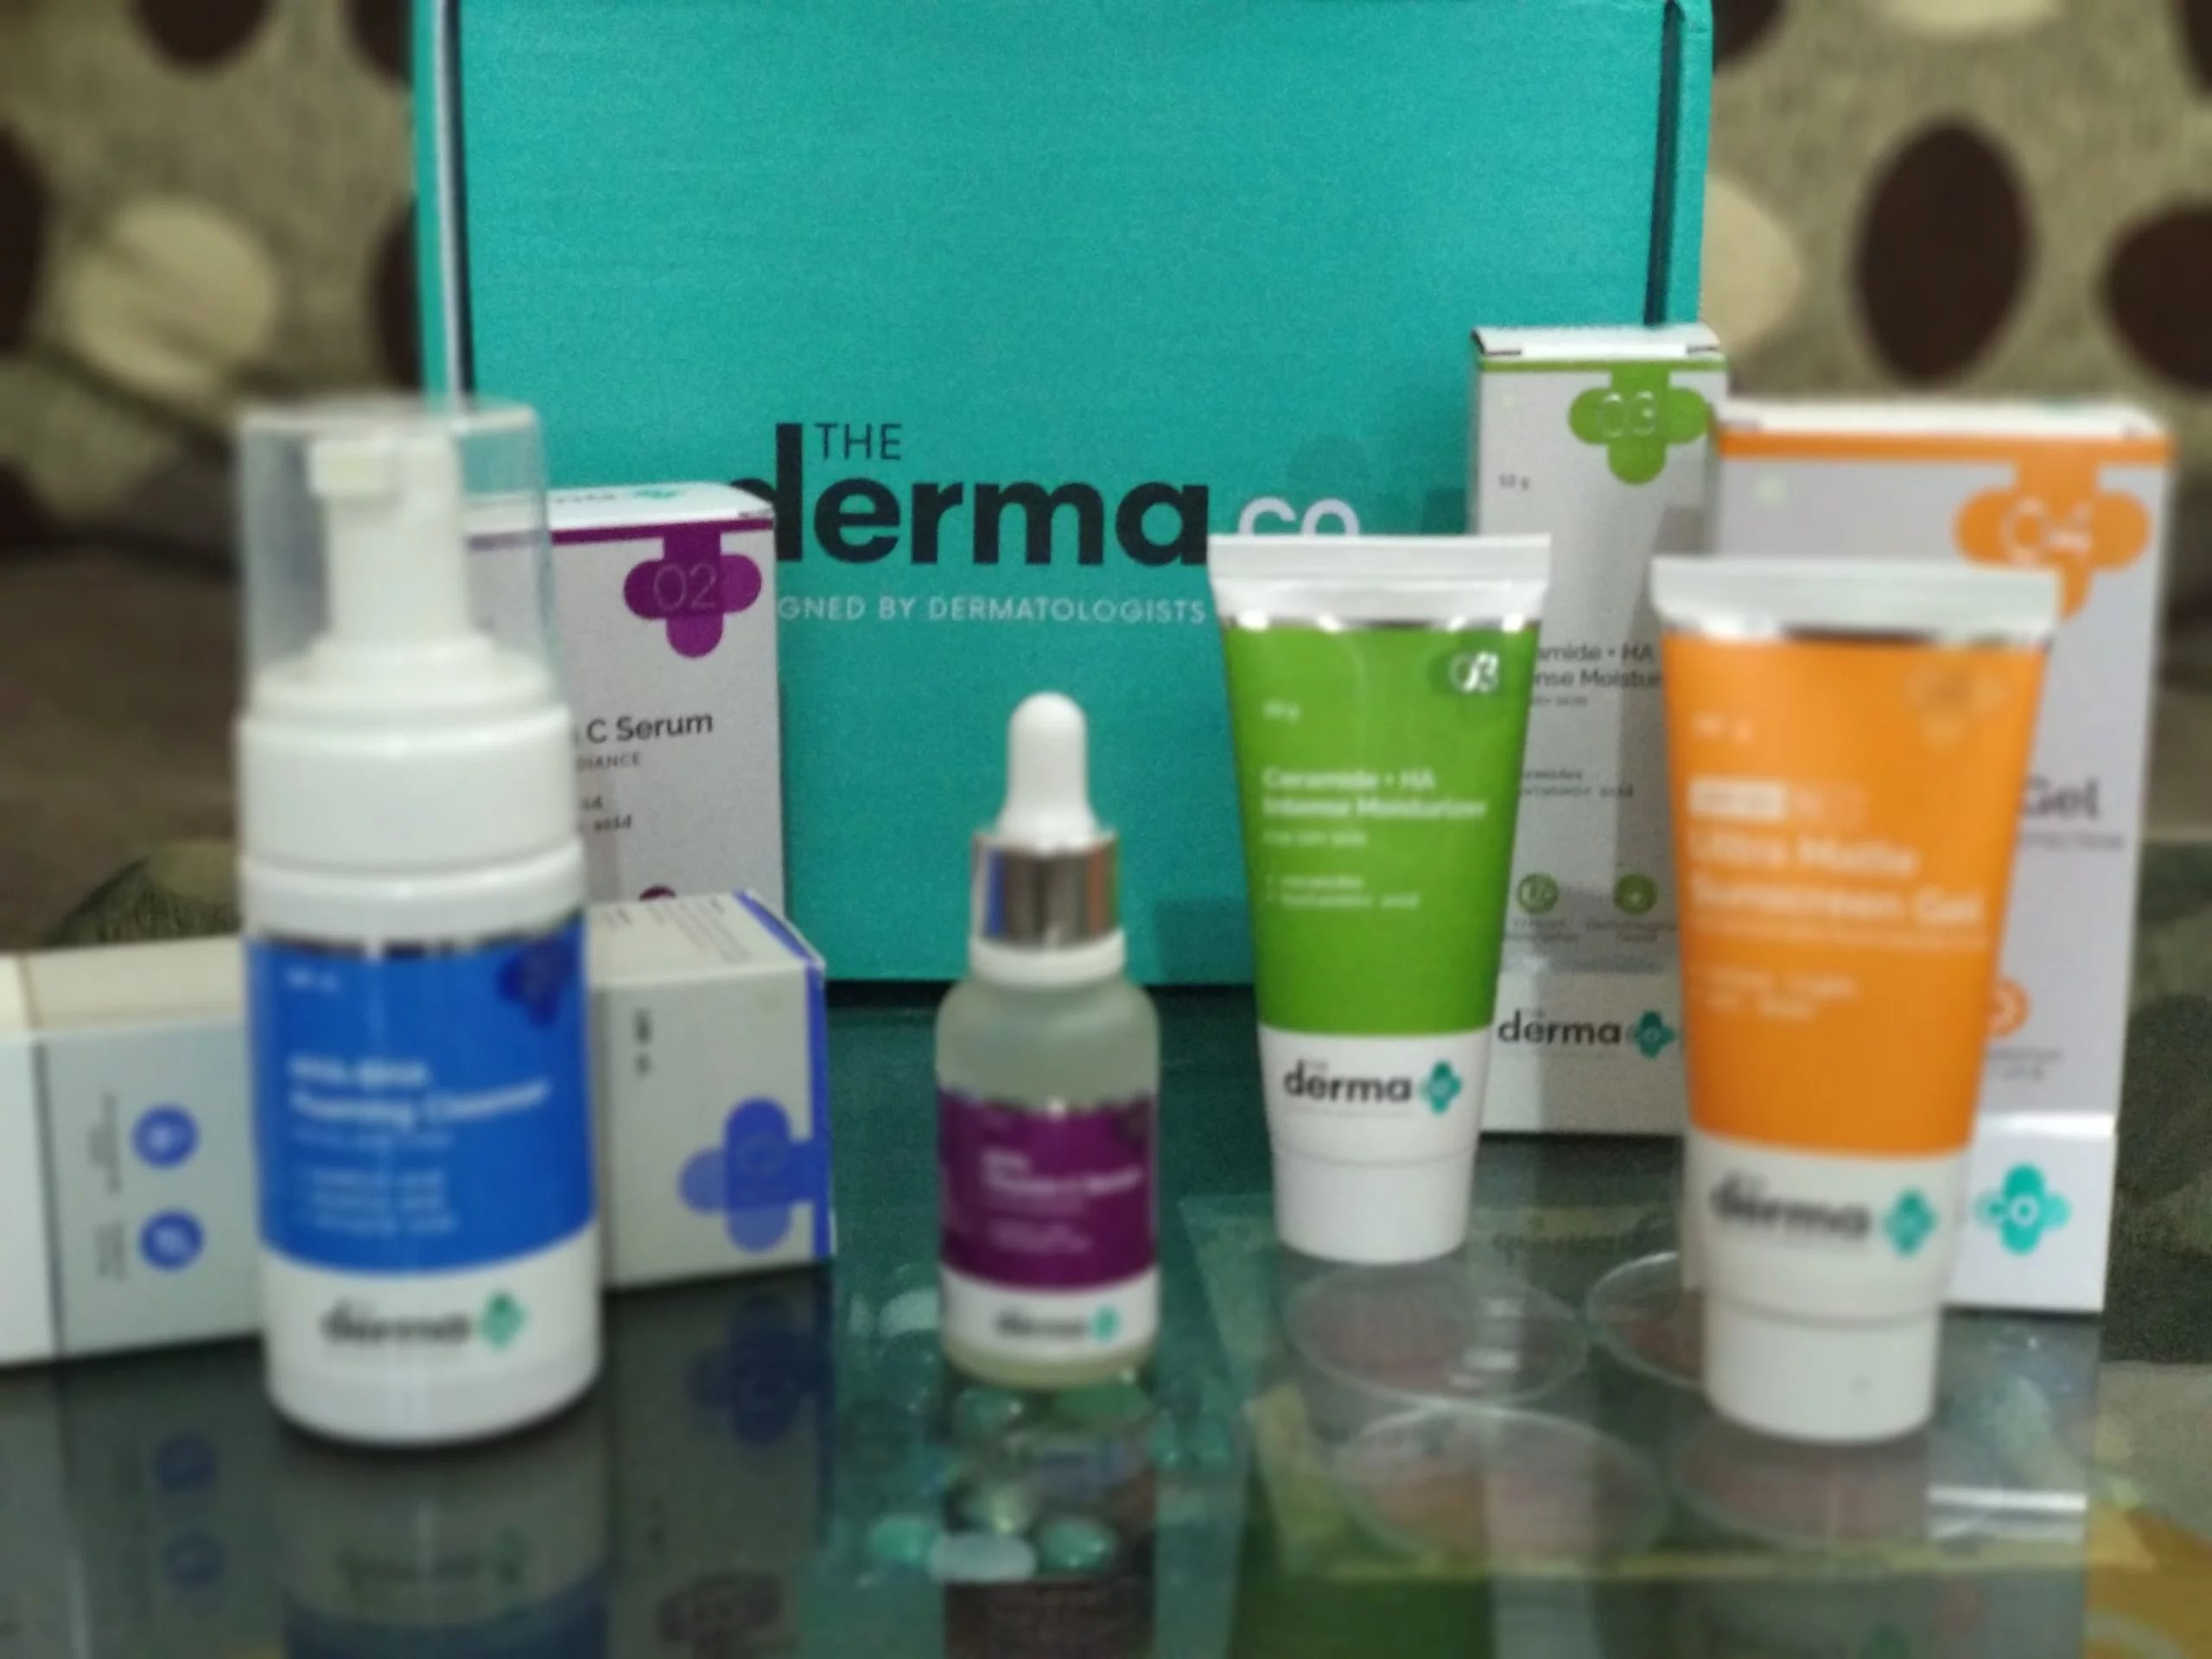 The Derma Co- Dermatologist Designed Skin Care Regimen